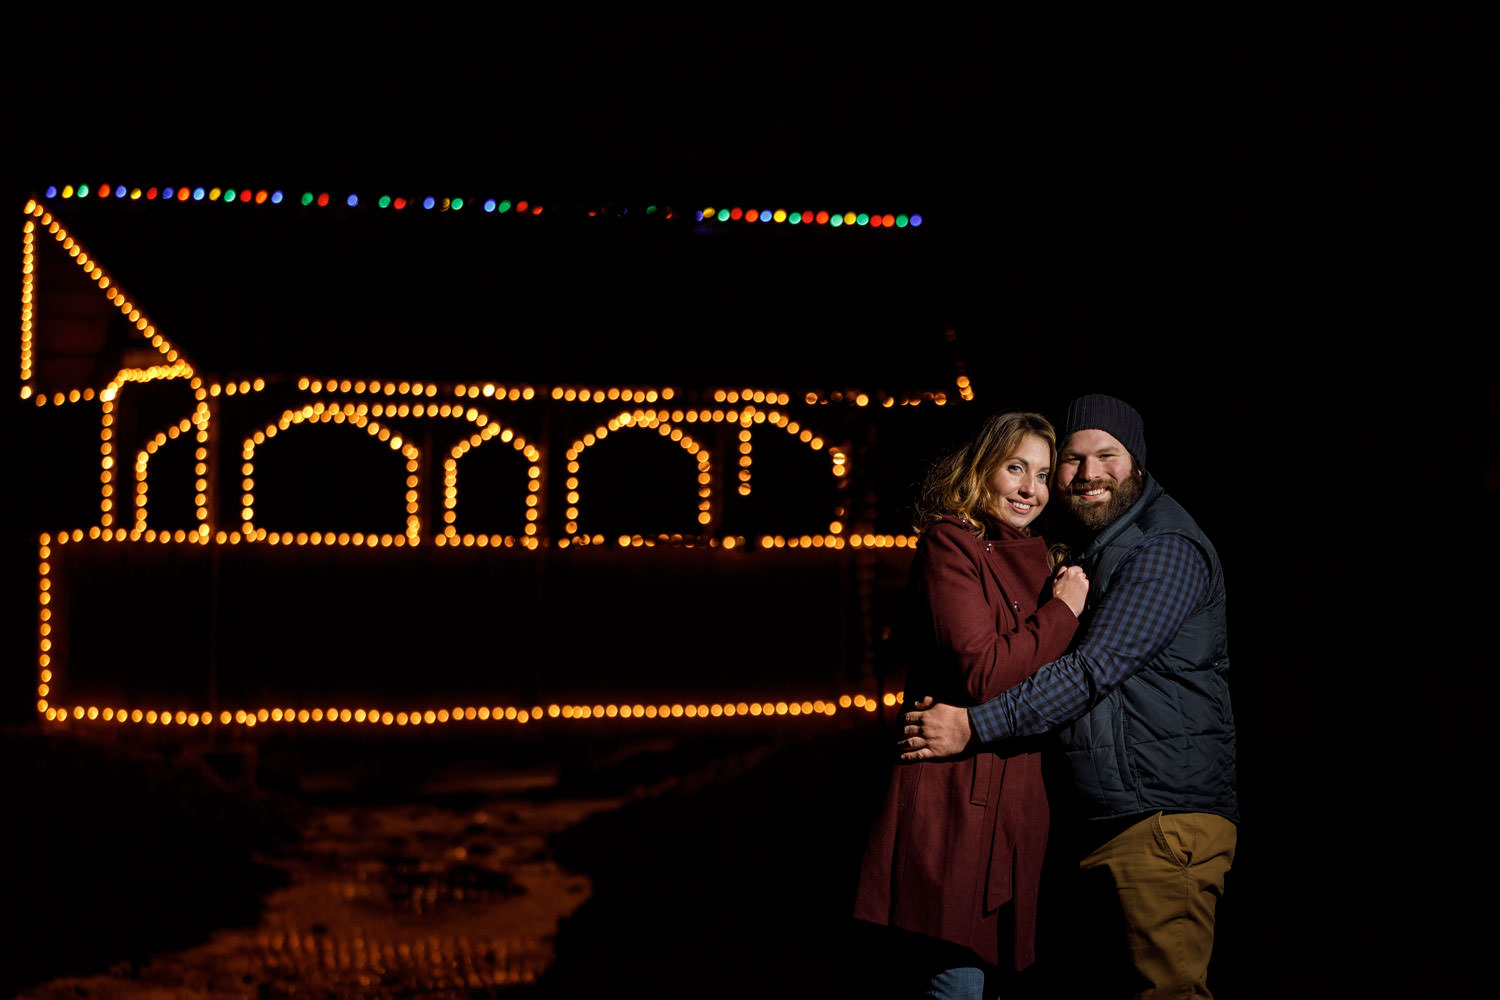 Engaged couple at night outside with Christmas lights on covered bridge